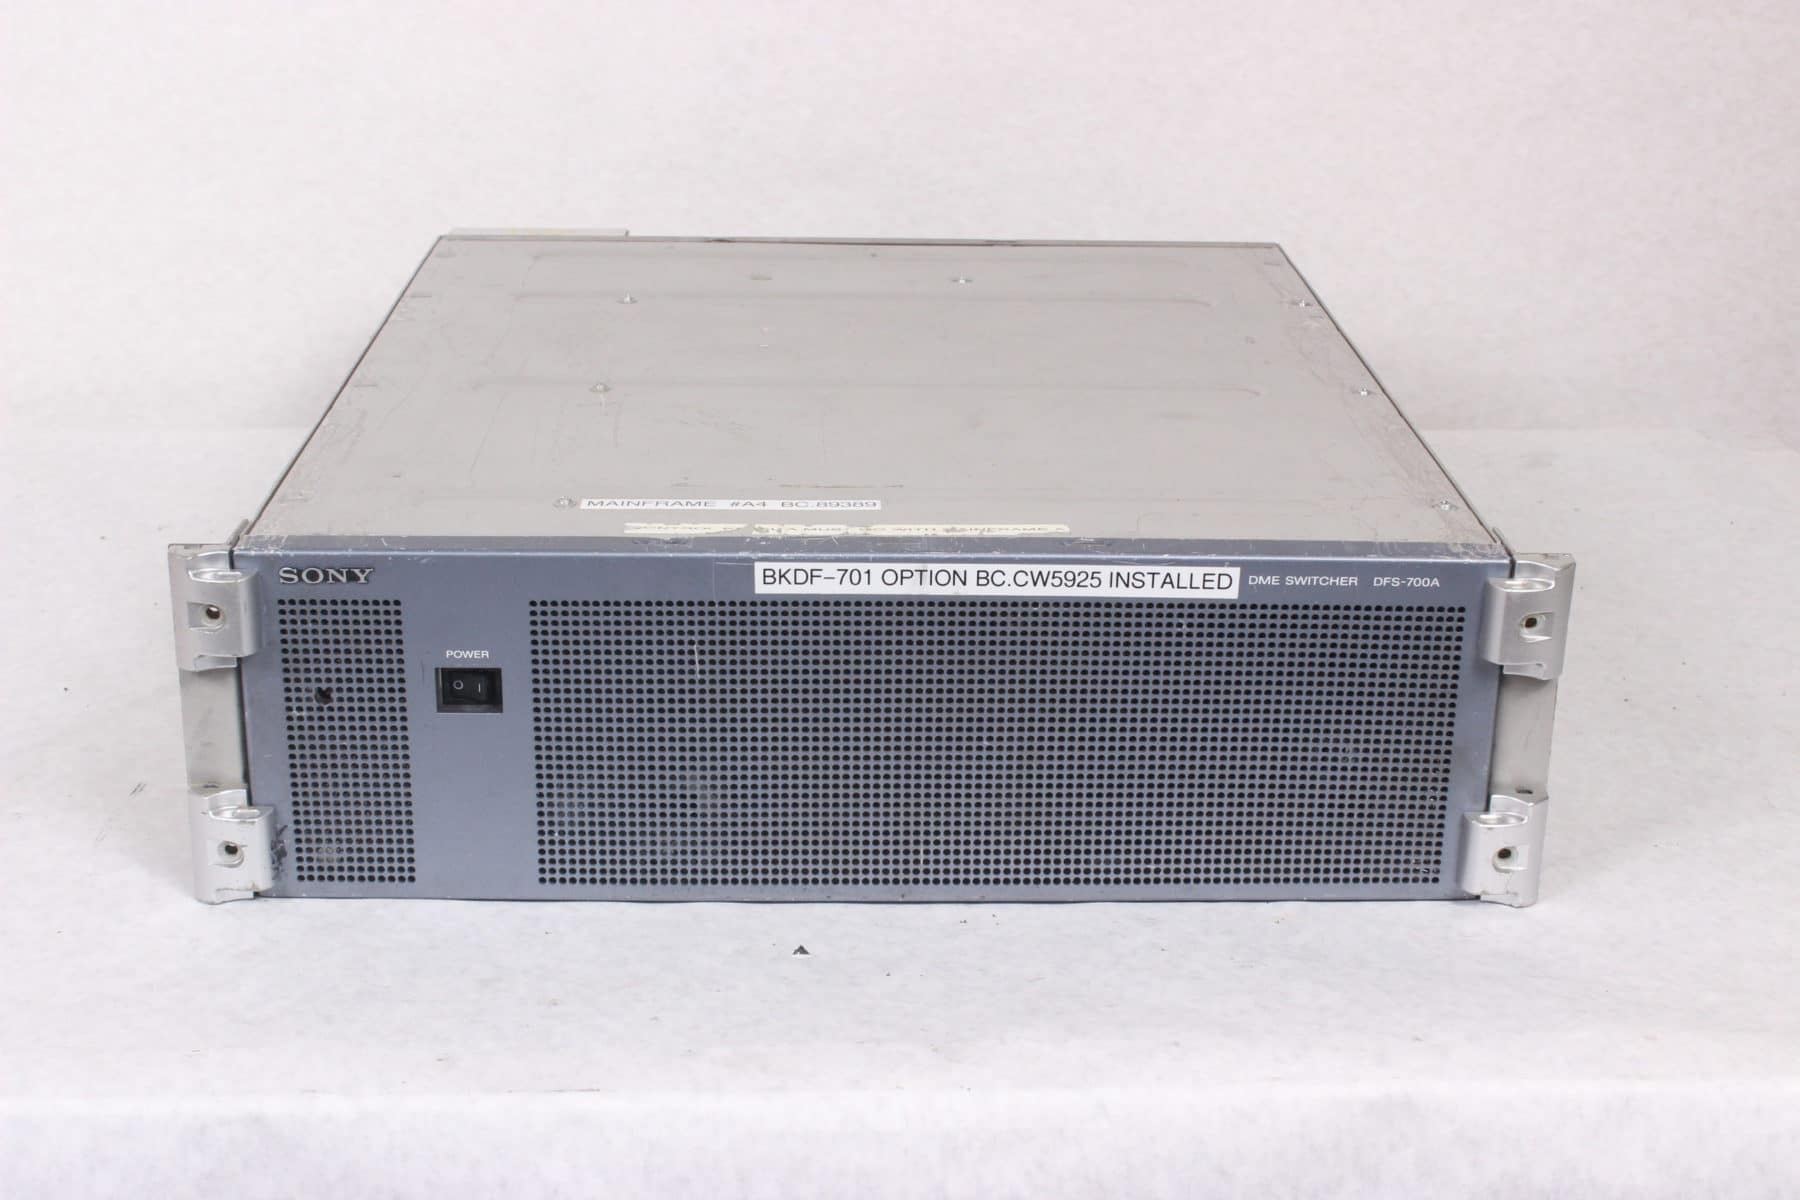 Sony DFS-700A Video Switcher (Parts Only)